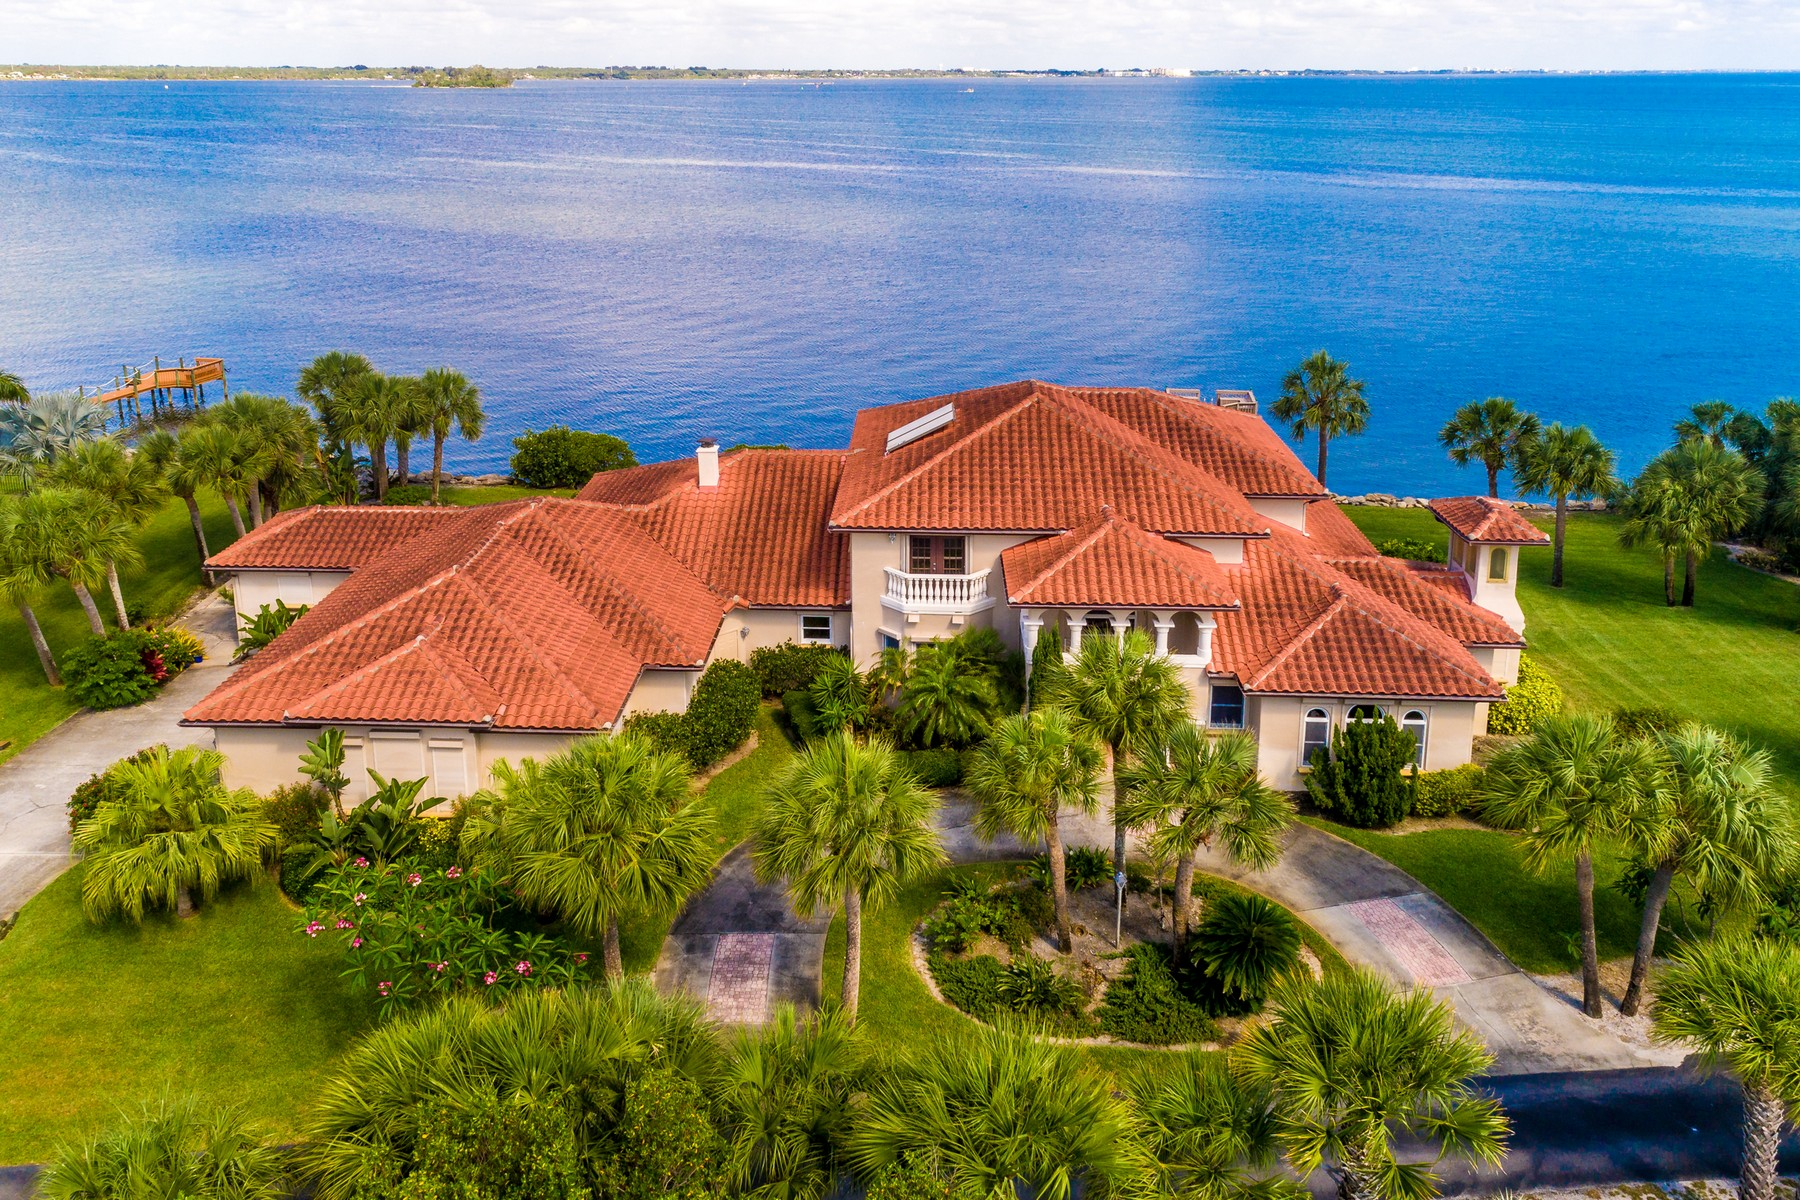 Single Family Homes için Satış at Stunning Riverfront Melbourne Beach Estate 467 Spoonbill Lane, Melbourne Beach, Florida 32951 Amerika Birleşik Devletleri